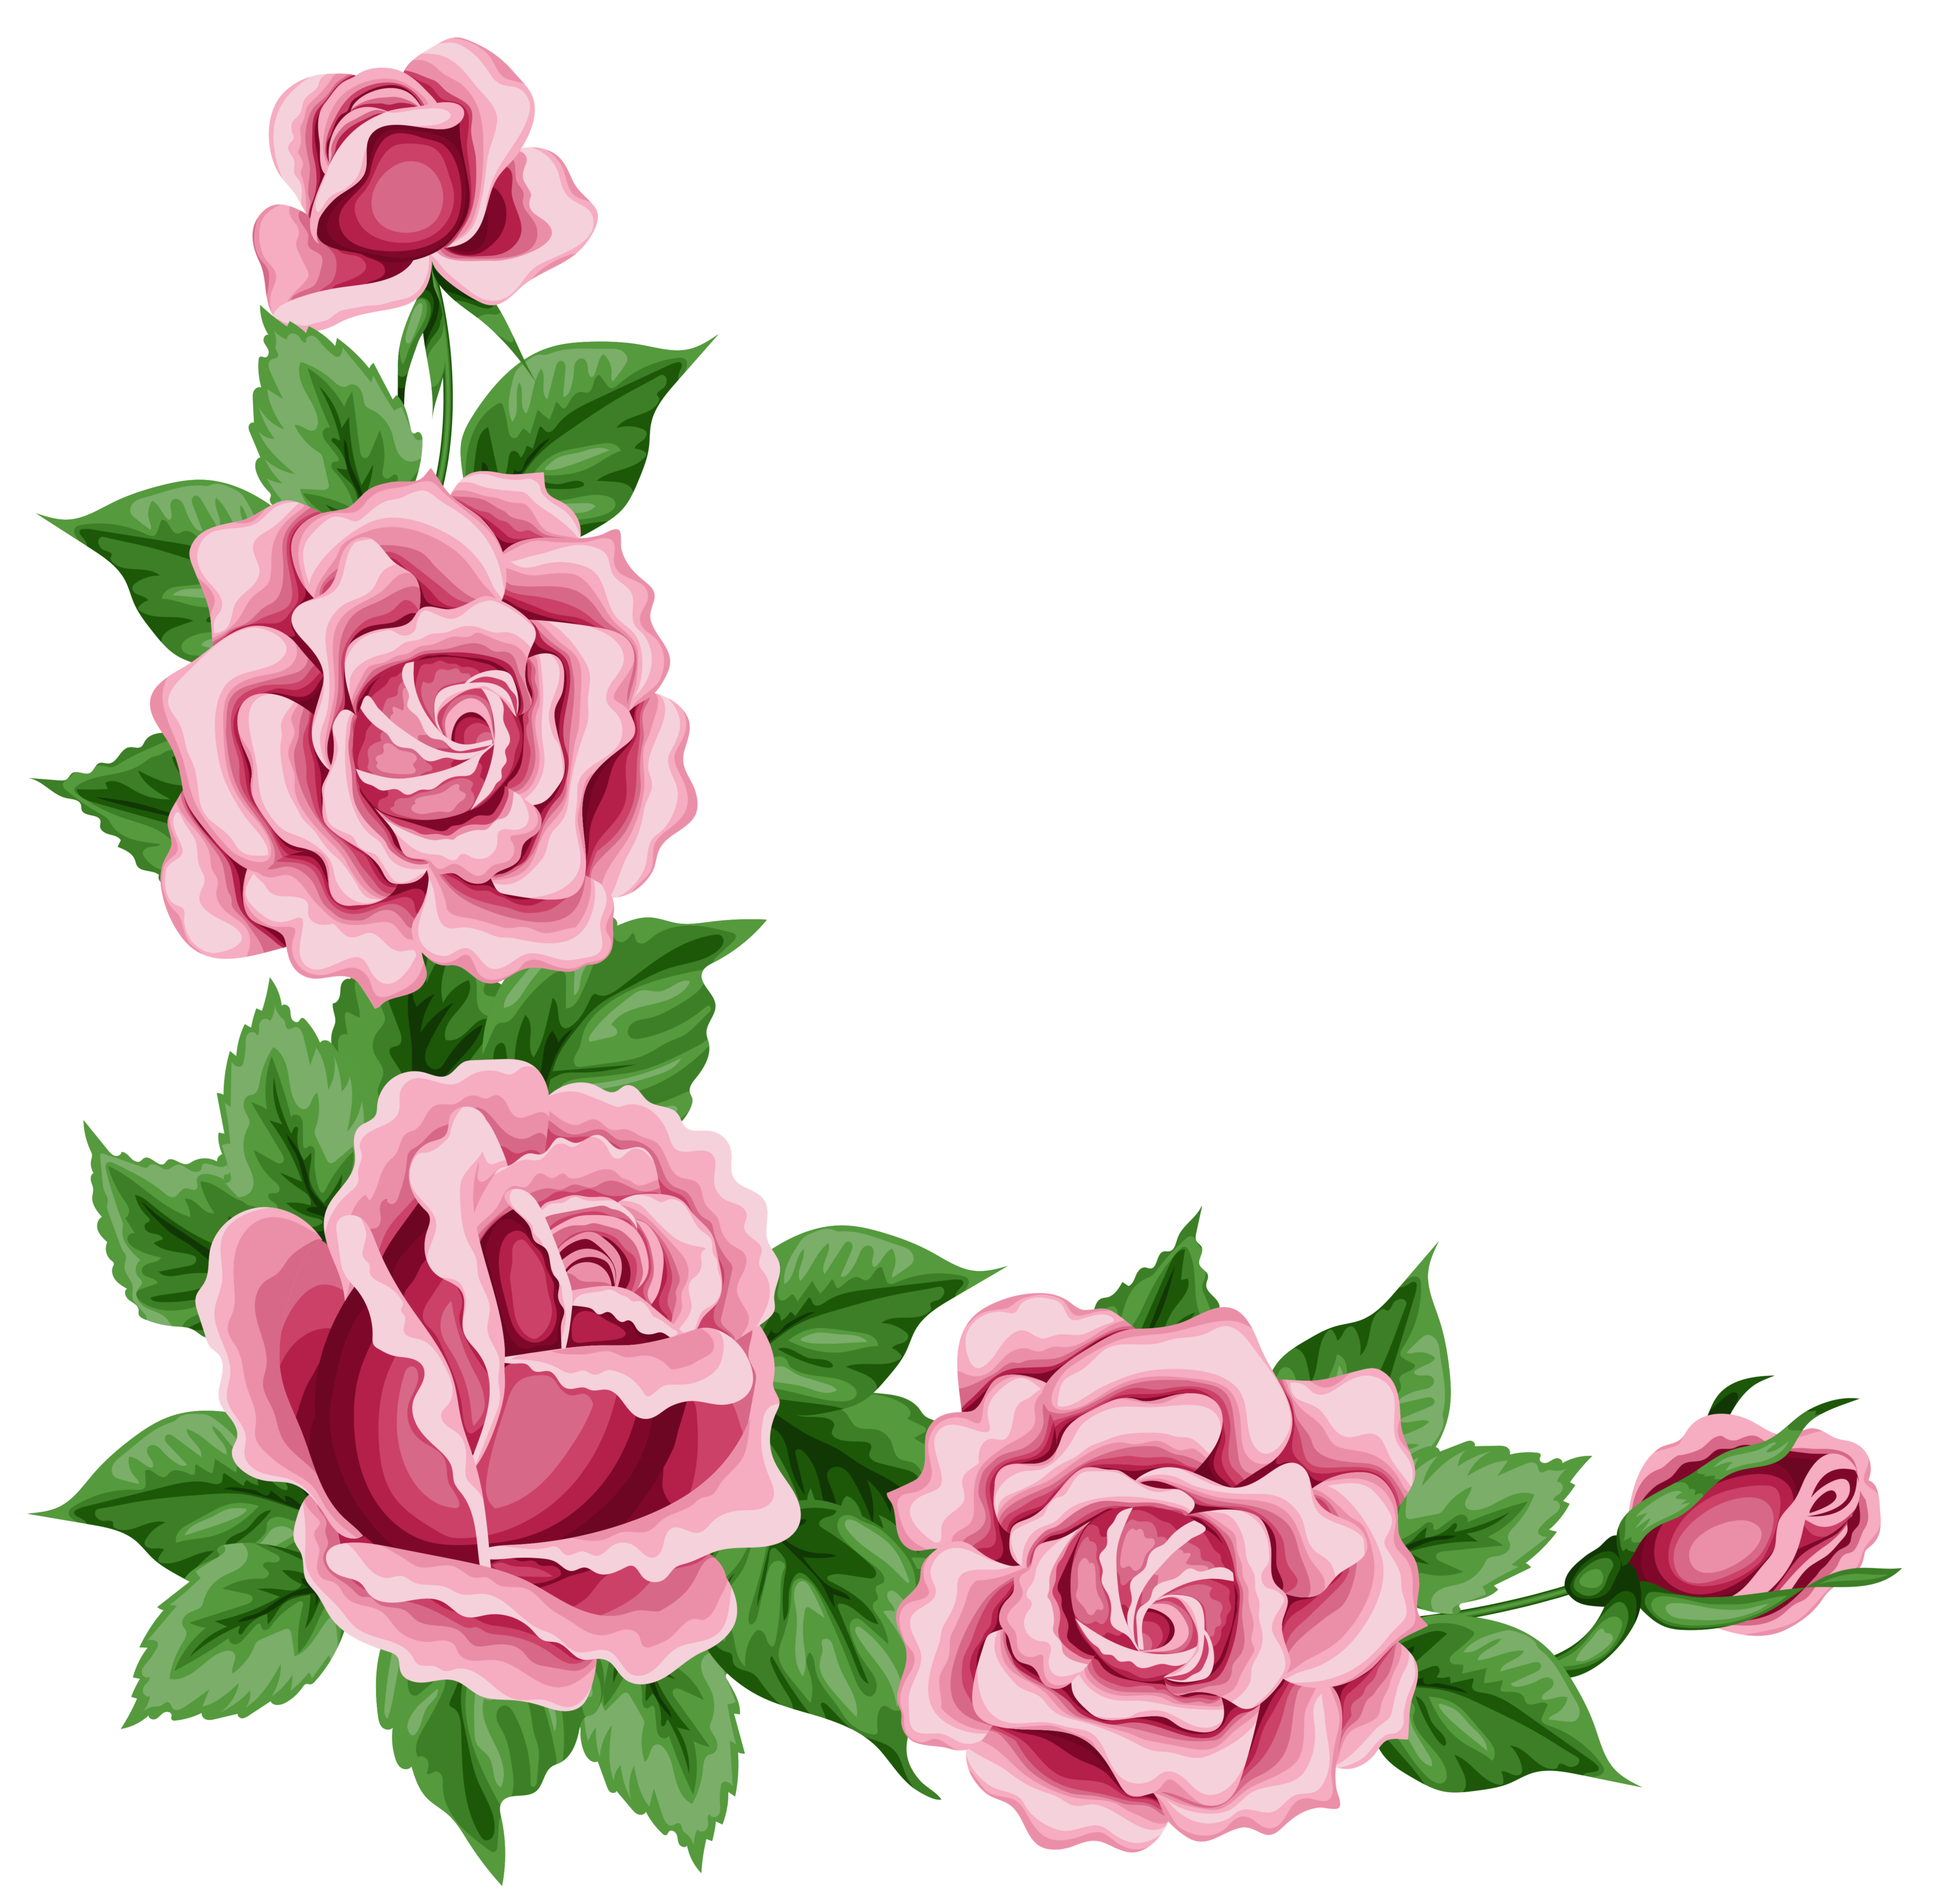 Painted purple roses for corner decorations clipart svg freeuse Rose Corner Clipart | Free download best Rose Corner Clipart on ... svg freeuse